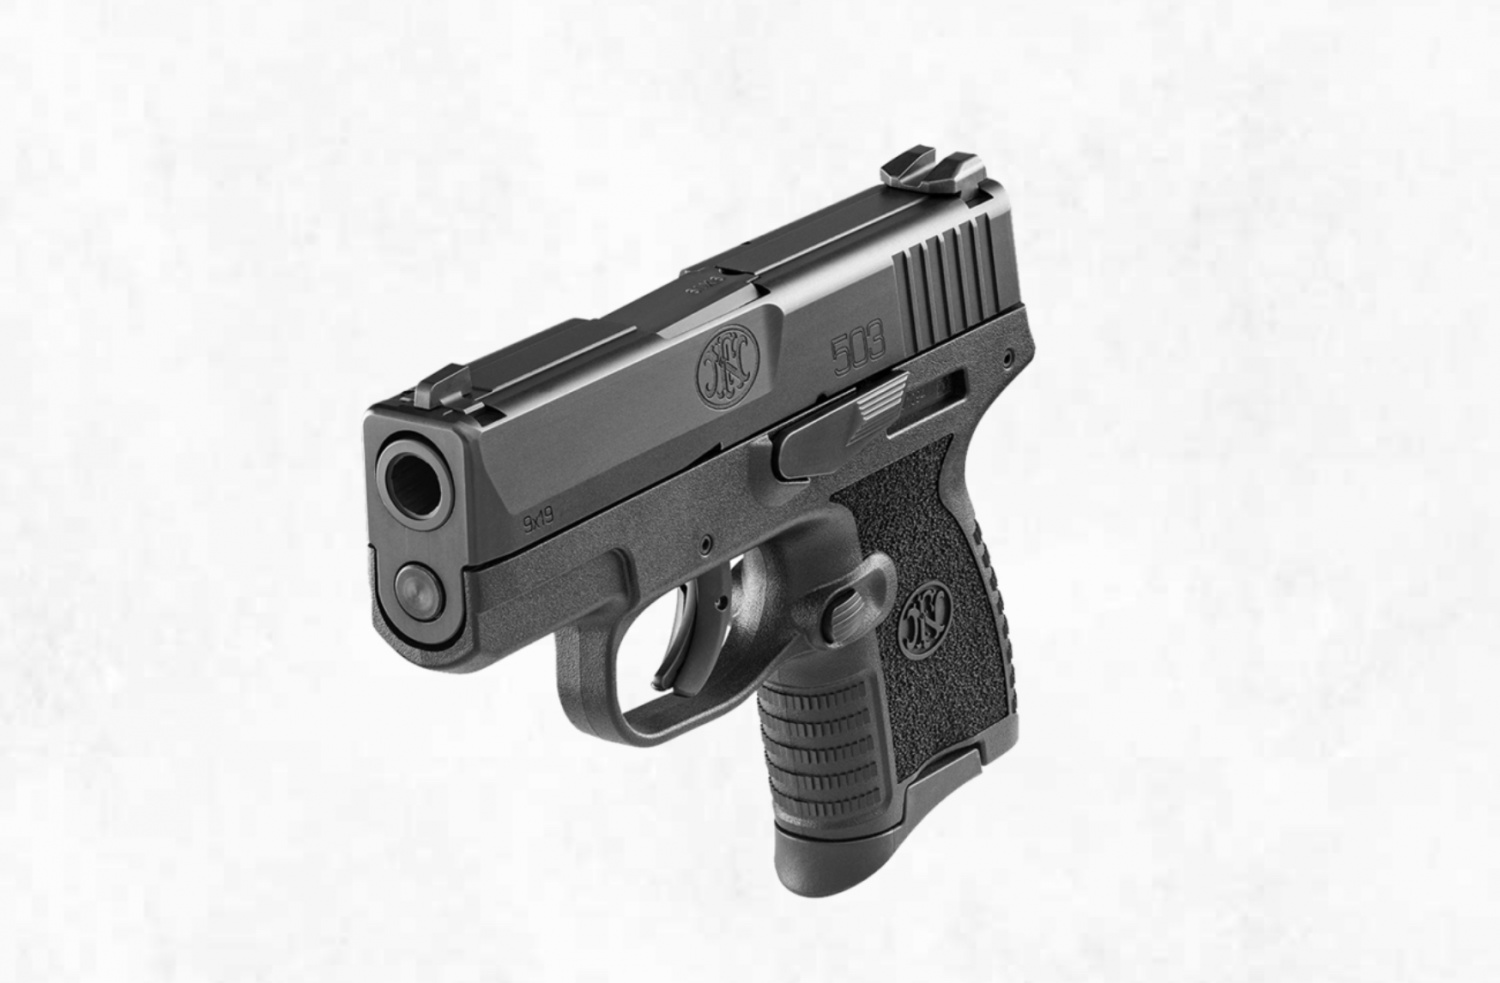 NEW RELEASE: The FN 503 Slim Pistol - Just in Time For Beach Season